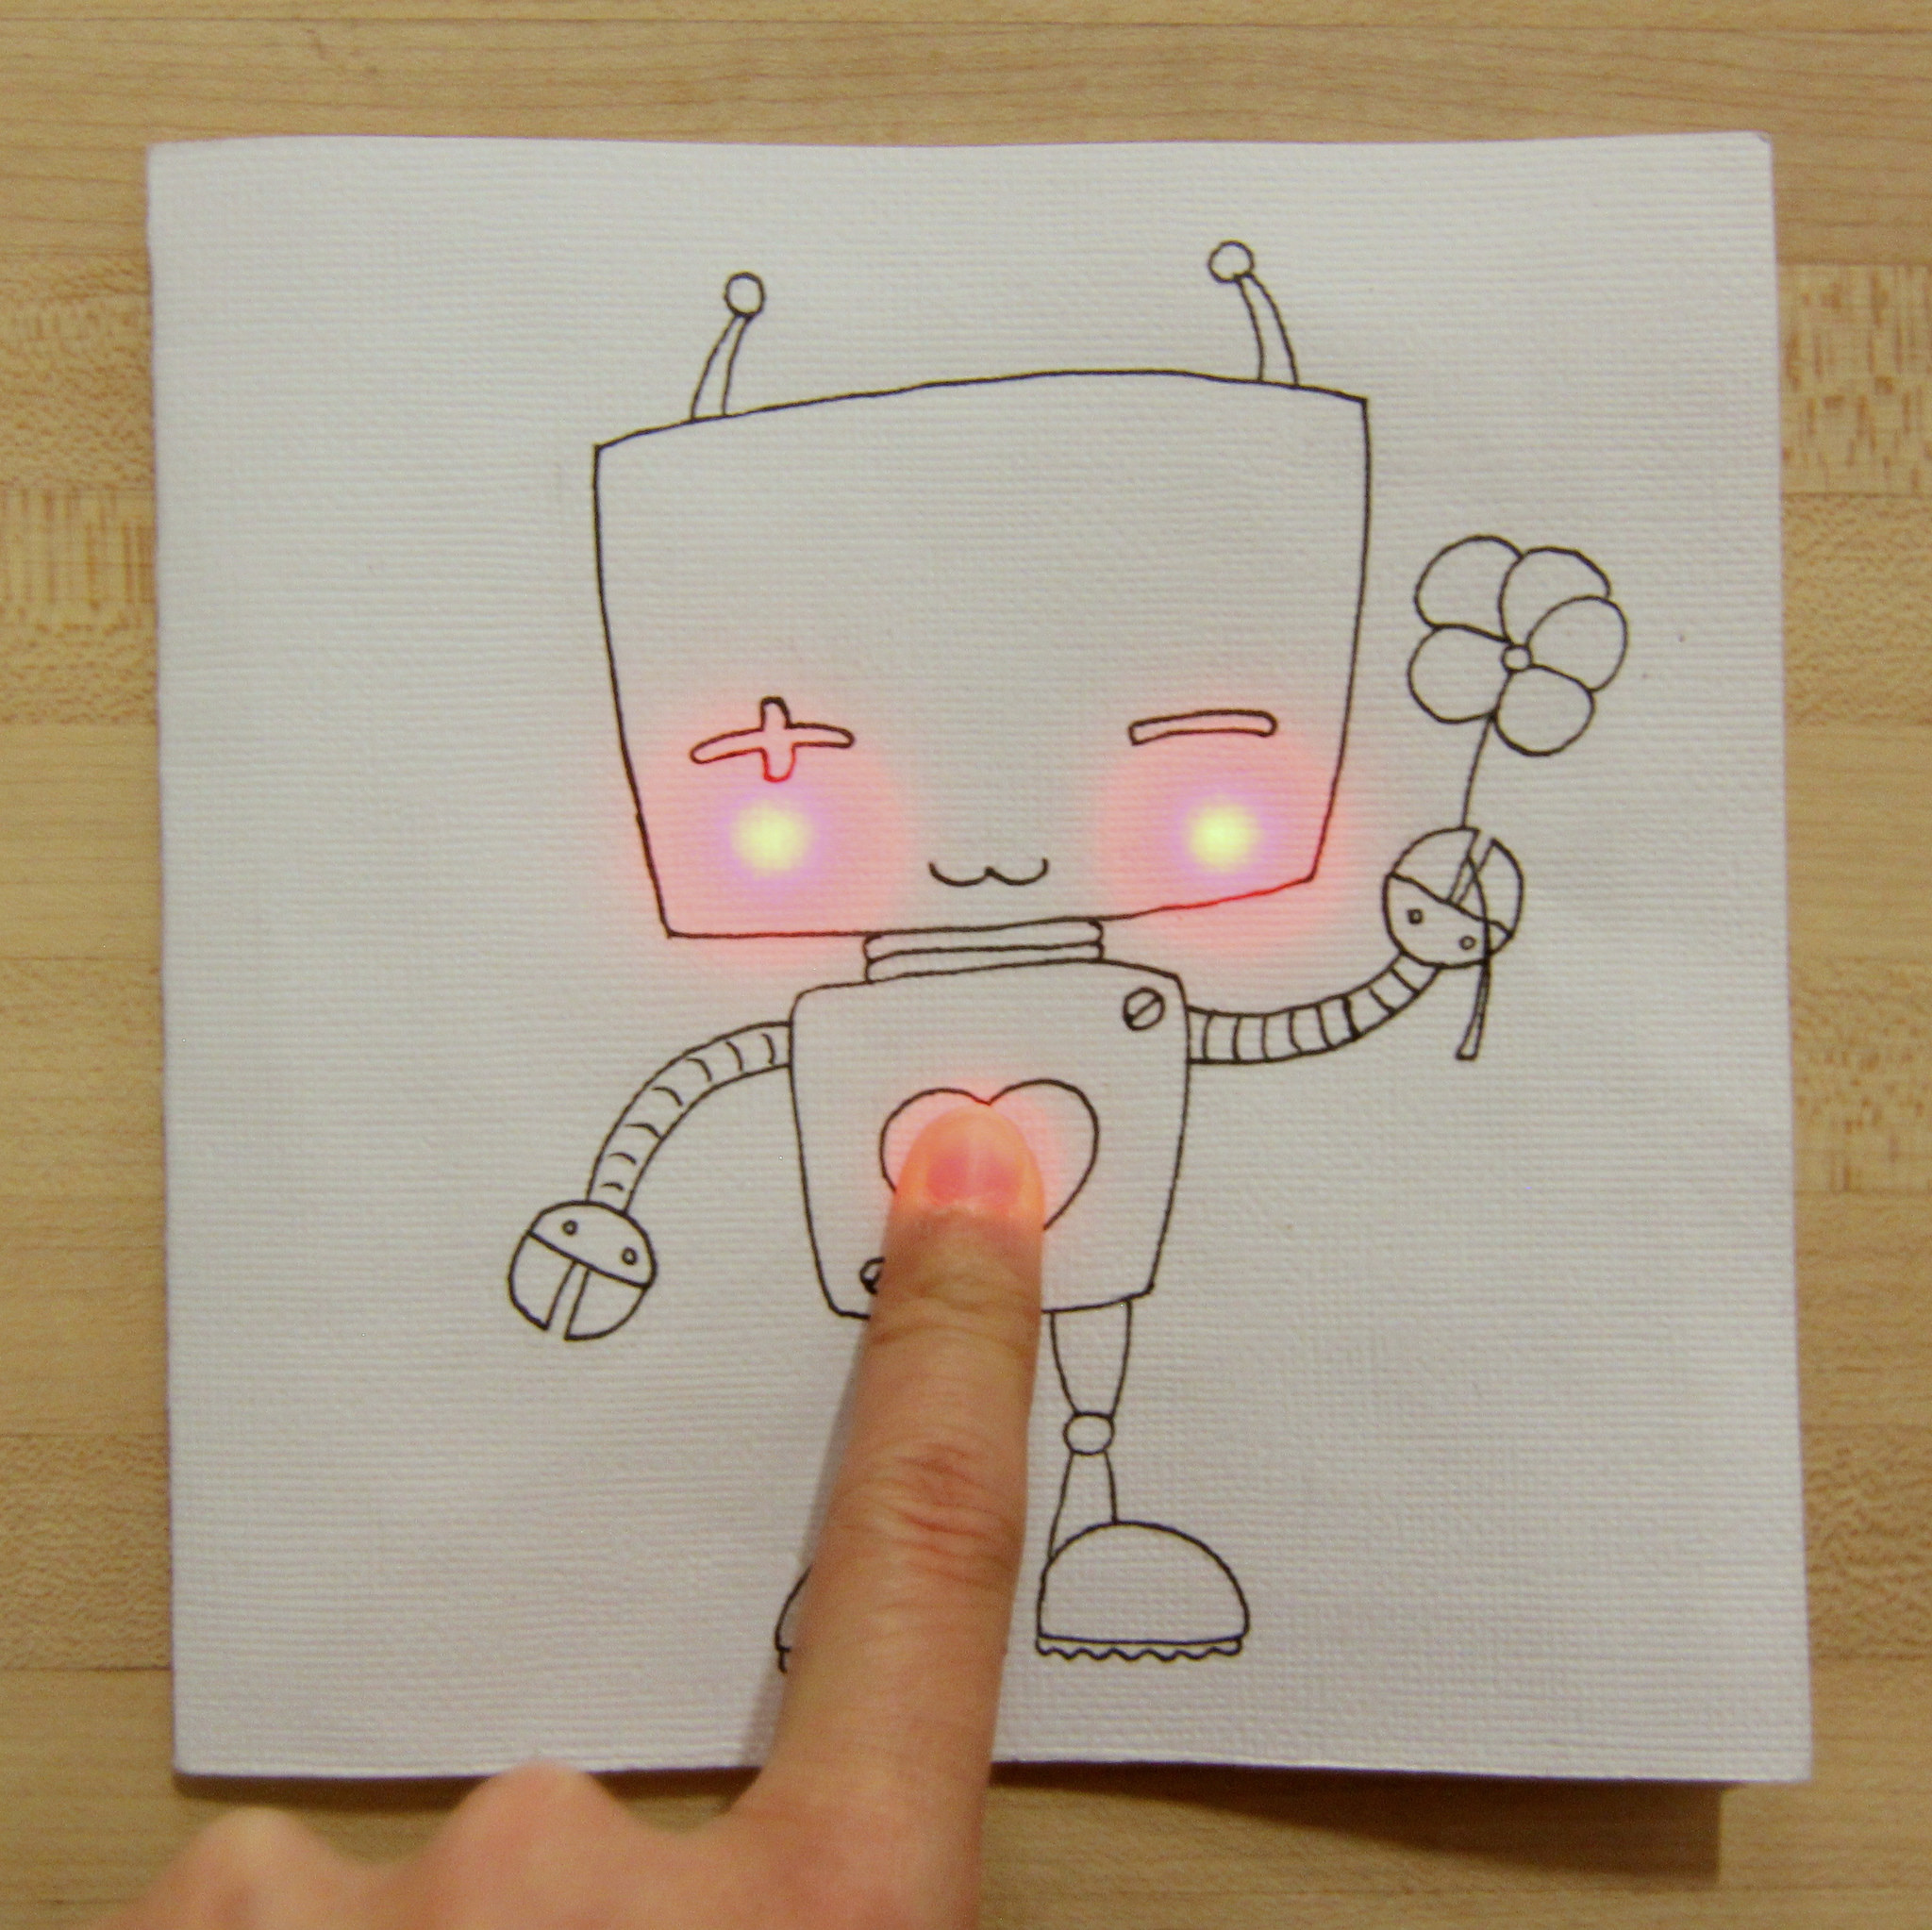 Paper Circuits Online Series is Back! June 2 to July 14